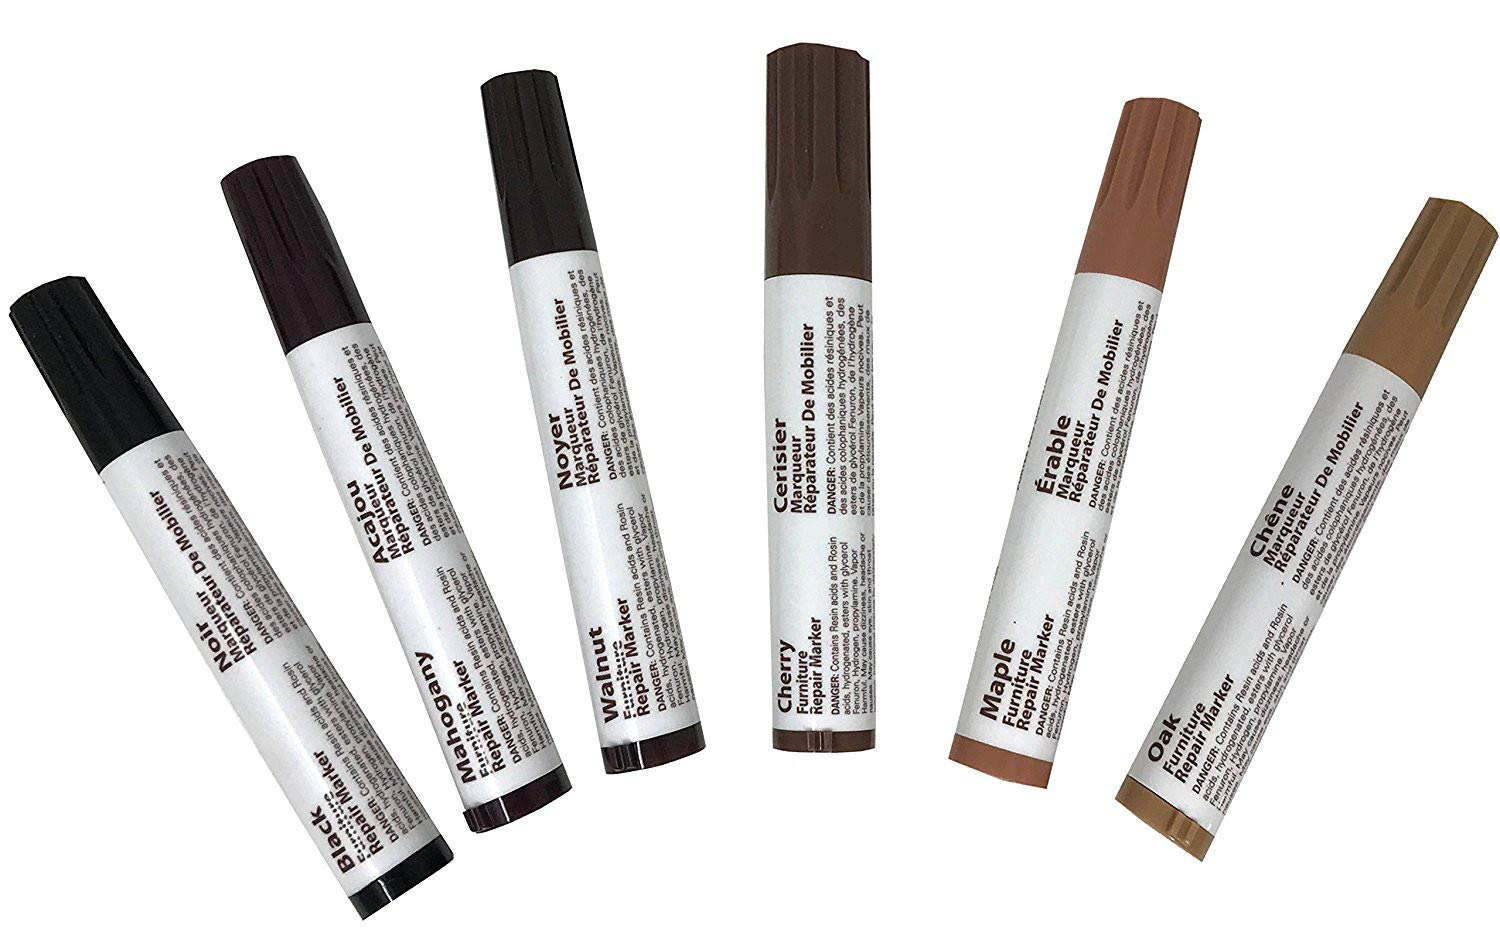 #1 Premium Furniture Repair System, 6 Piece Marker Filler Set for Every Wood Shade - Oak Cherry Mahogany Maple Black Walnut Unique Imports